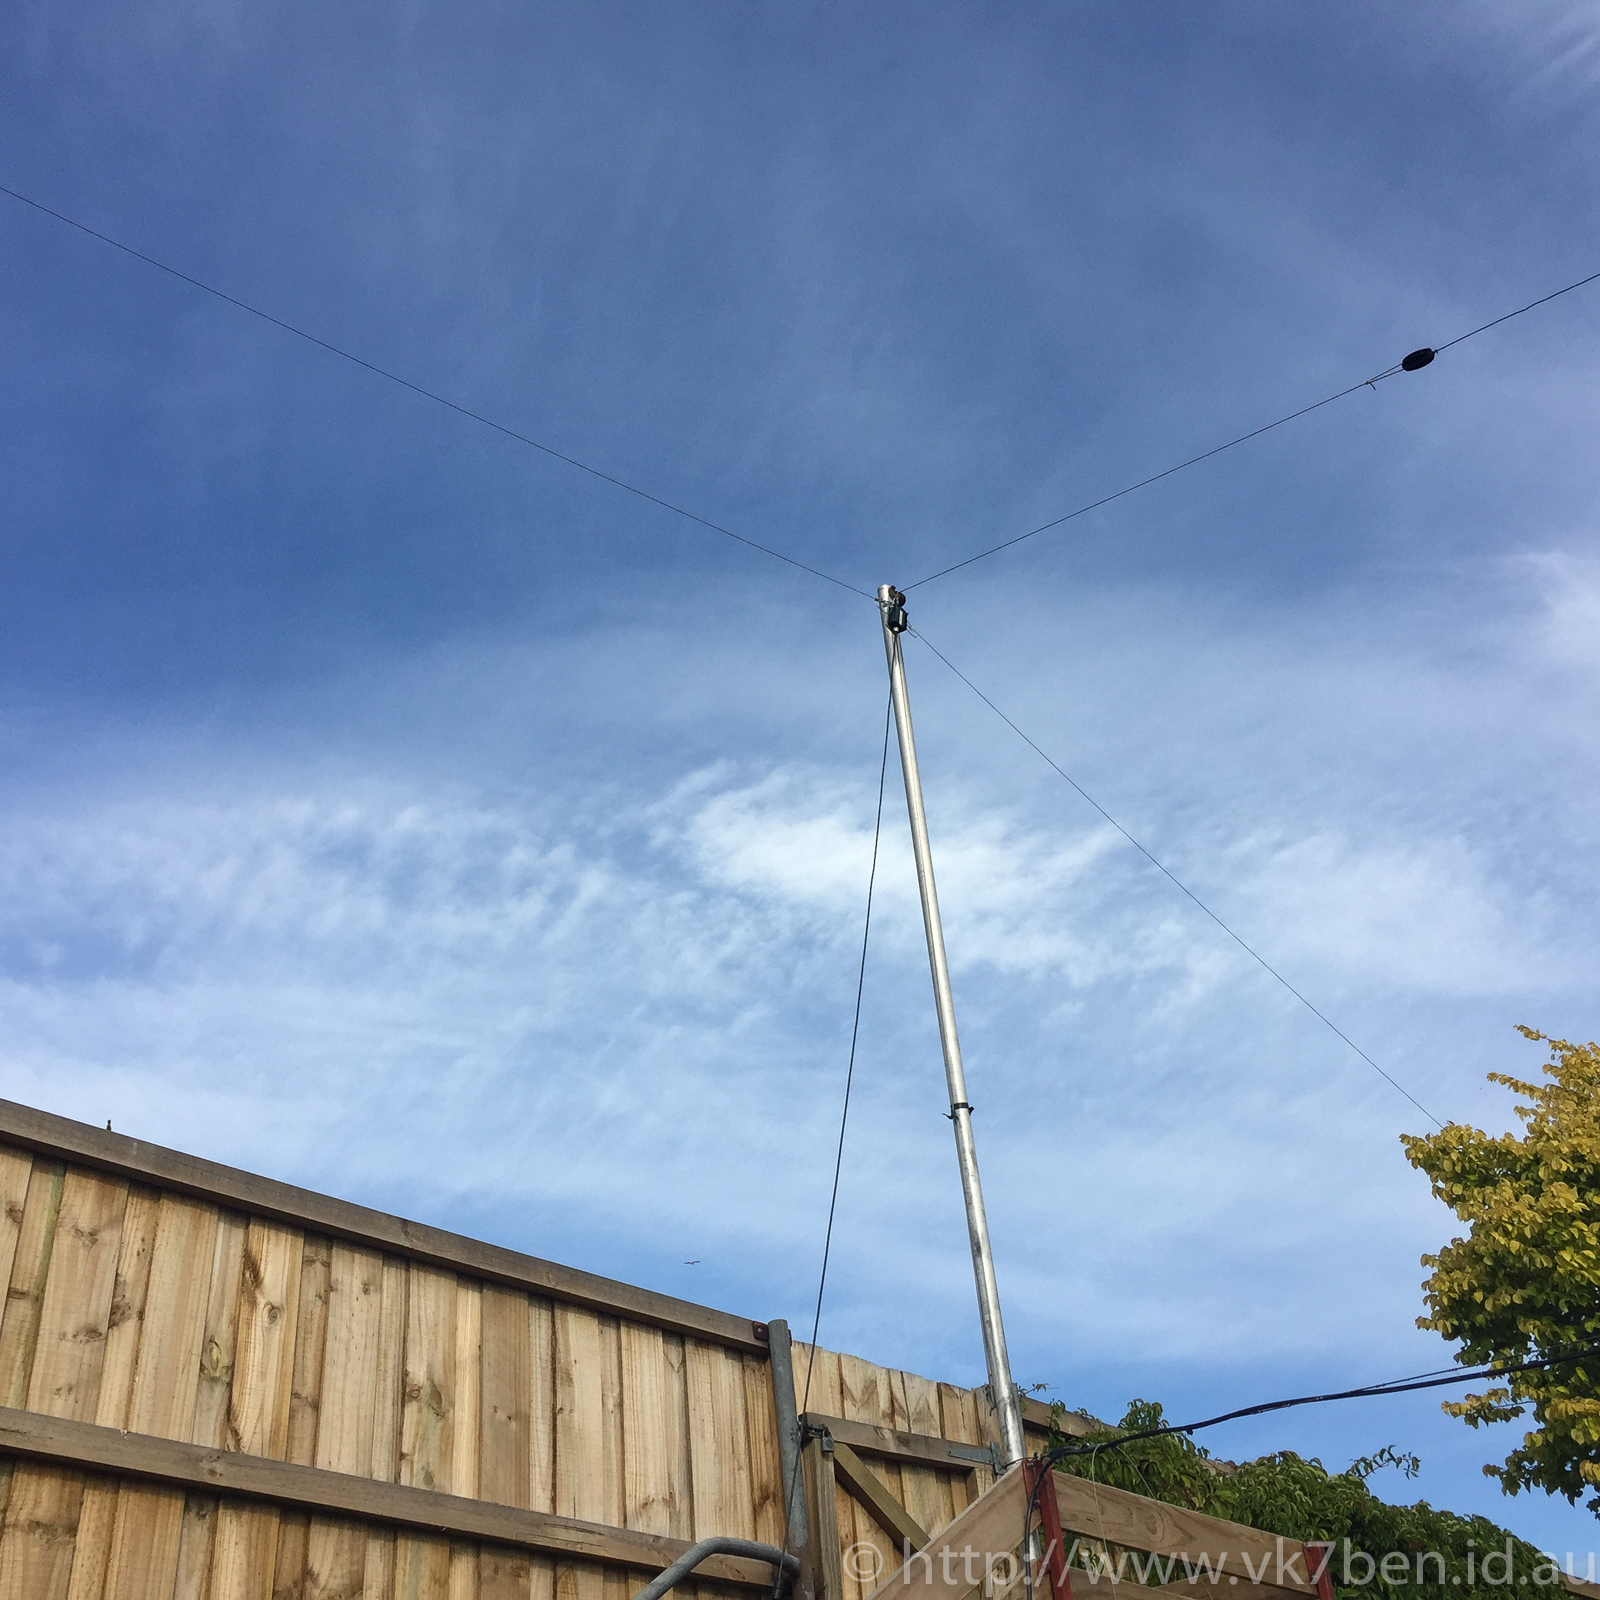 New HF Antenna for Home – an OCF Windom! – CQ DE VK7BEN